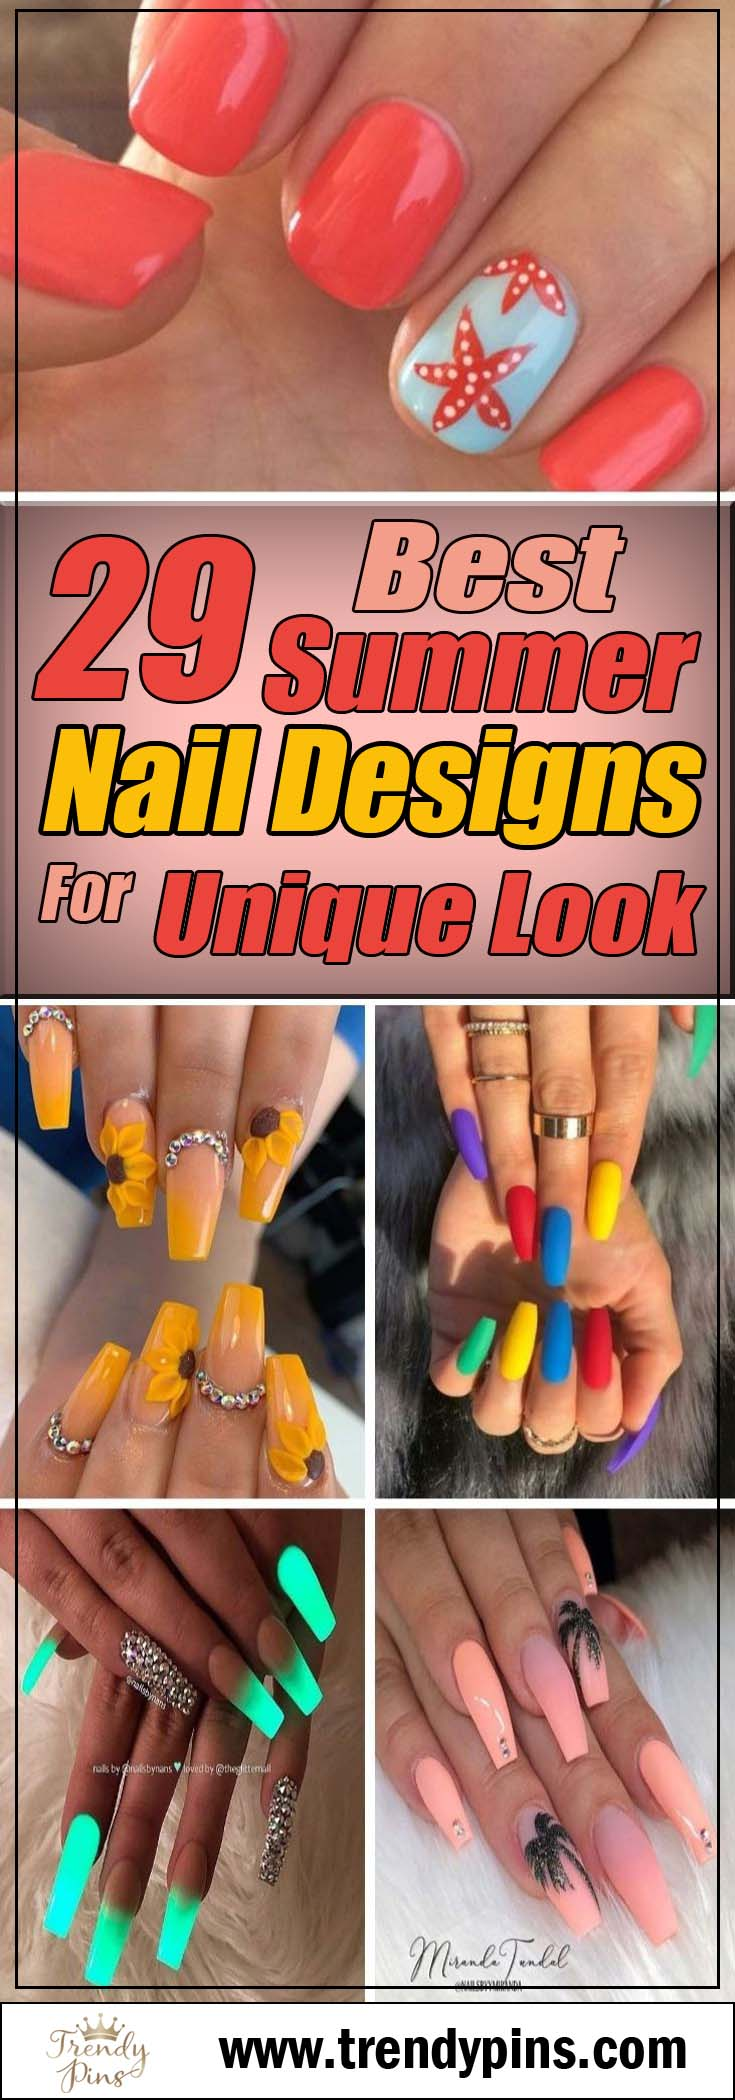 29 Best Summer Nail Designs For Unique Look #nails #beauty #trendypins